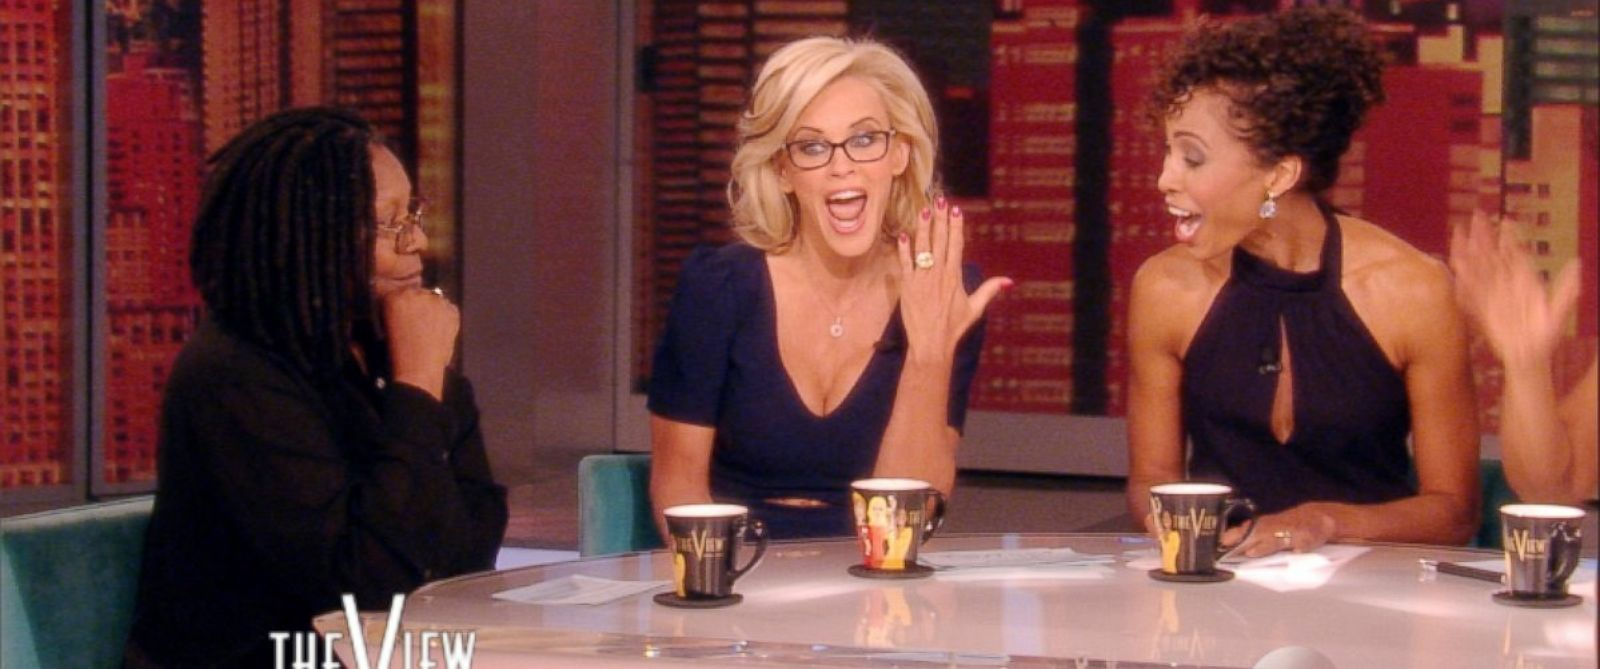 "PHOTO: While hosting ""The View"" on April 16, 2014, Jenny McCarthy announced that she is engaged to Donnie Wahlberg and showed off her engagement ring."